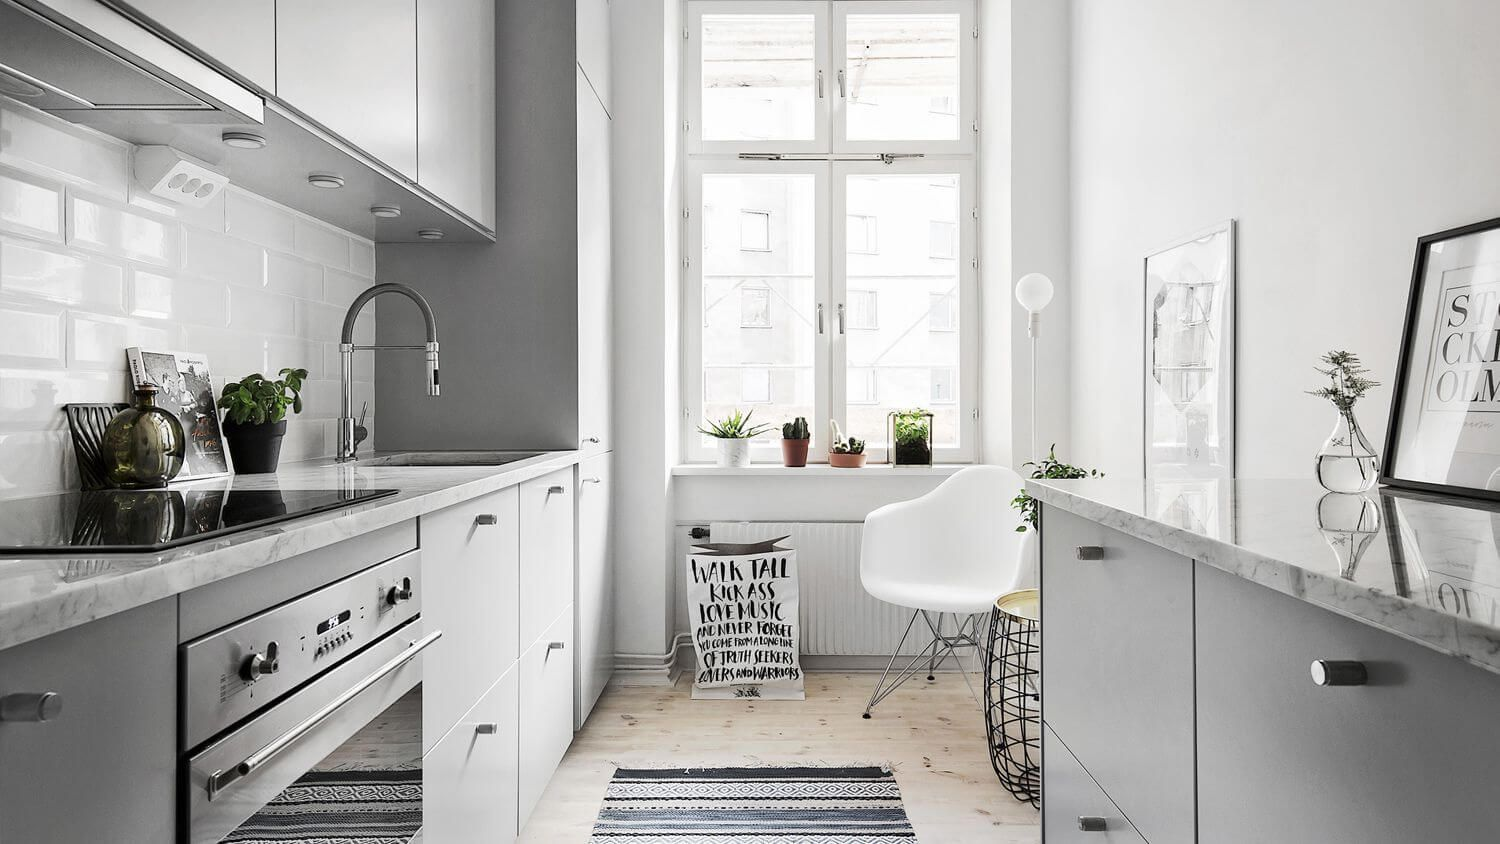 Galley small kitchen in gray and white tones with simple design and modern materials